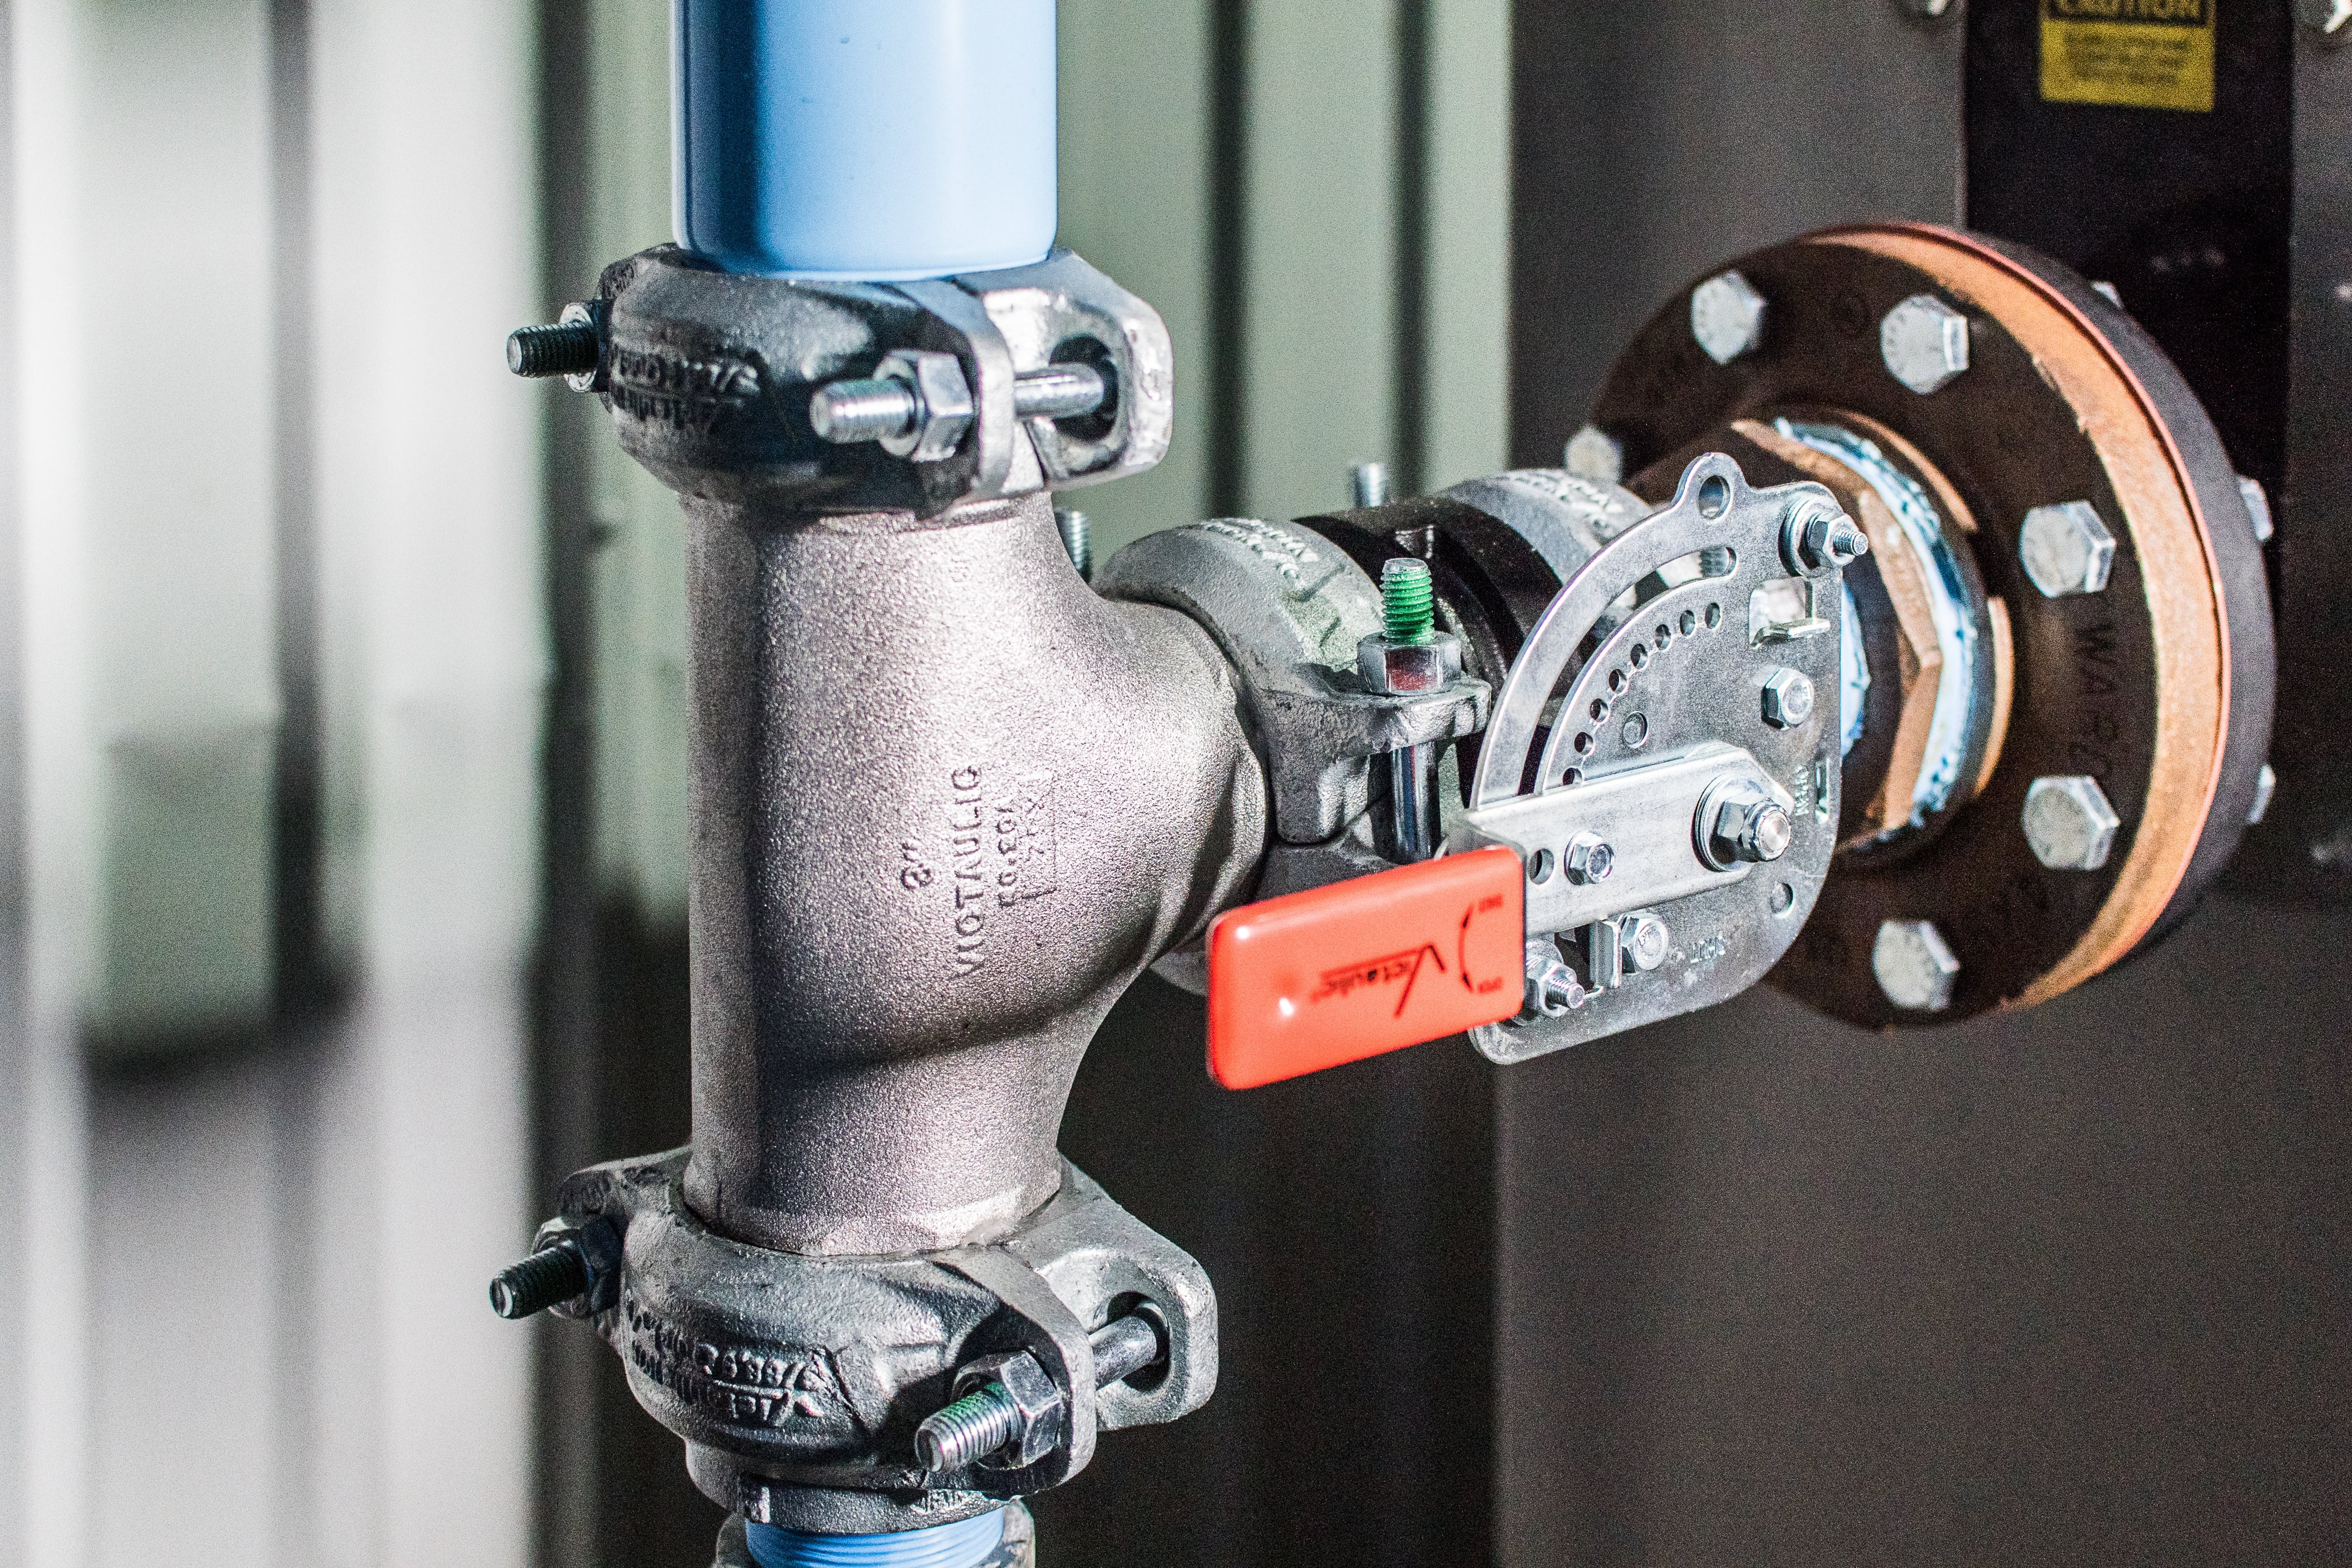 leak detection for air compressors